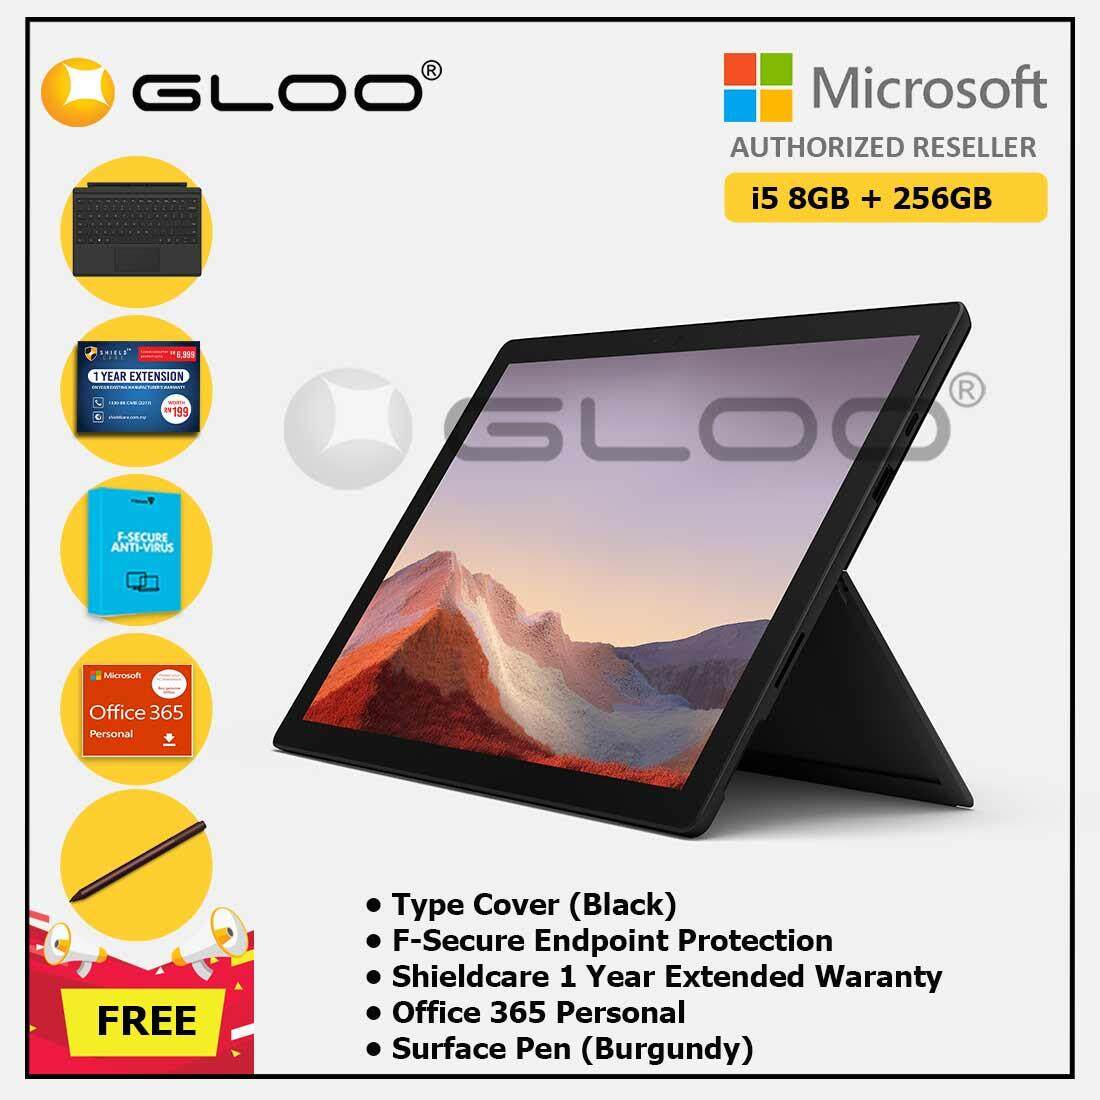 Microsoft Surface Pro 7 Core i5/8G RAM - 256GB Black - PUV-00025 + Surface Pro Type Cover [Choose Color] + Shieldcare 1 Year Extended Warranty + F-Secure Endpoint Protection + Office 365 Personal (ESD) + Surface Pen  [Choose Color] Malaysia